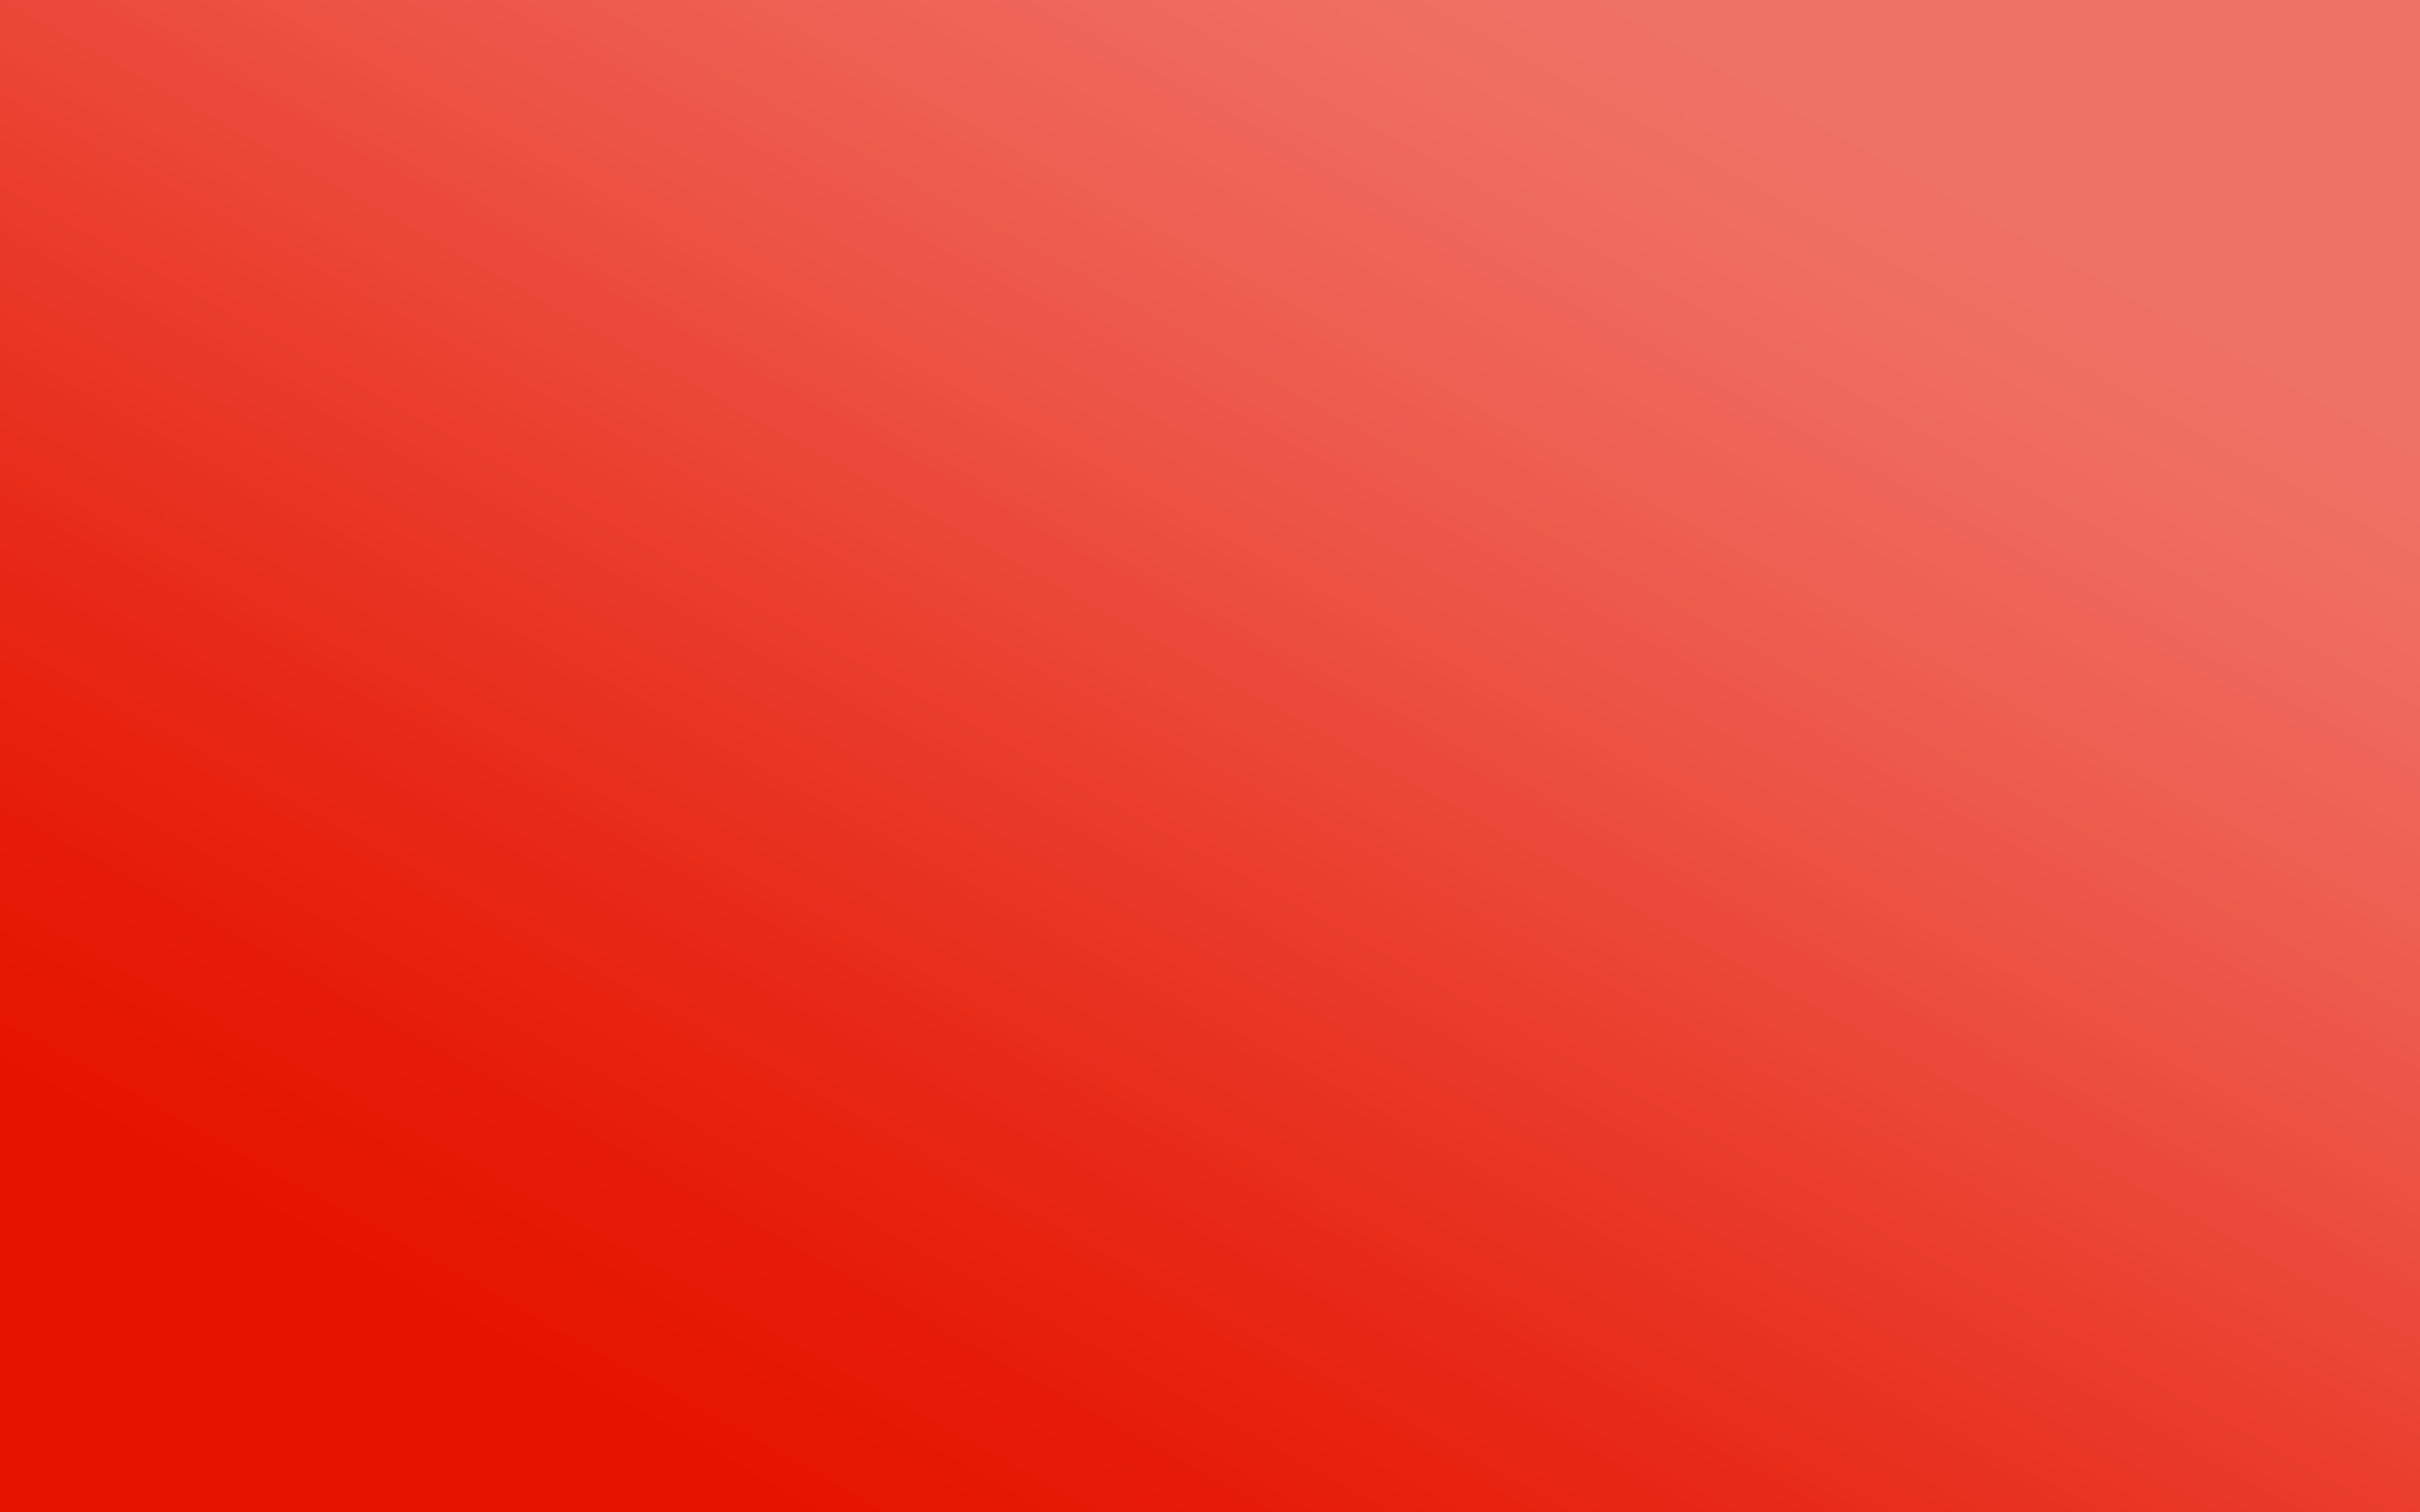 Brown Wallpaper Iphone X Red Gradient Background 183 ① Download Free Cool Hd